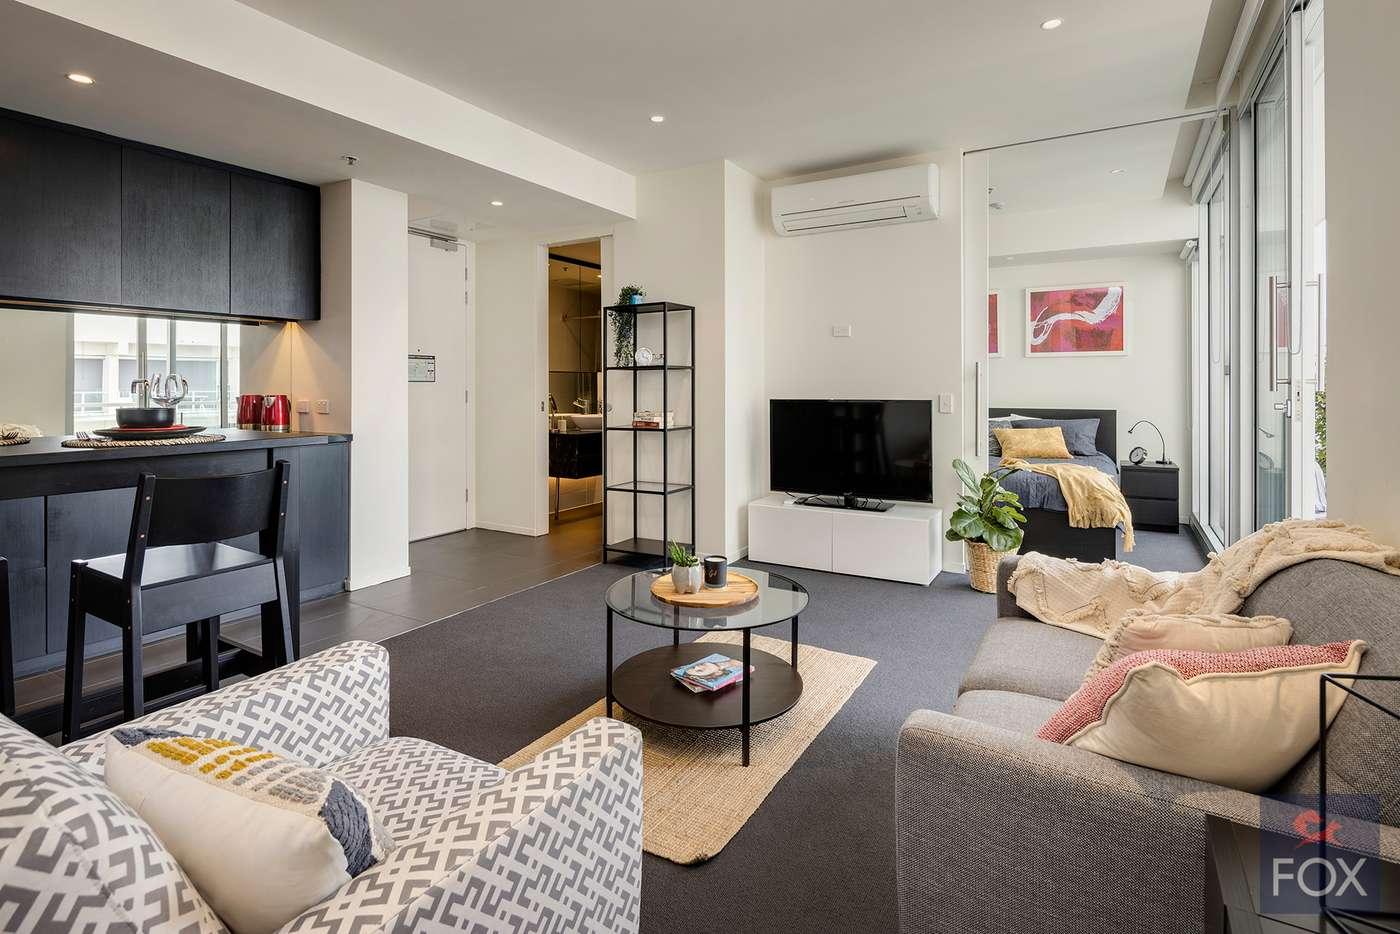 Fifth view of Homely apartment listing, 819/33 Warwick Street, Walkerville SA 5081